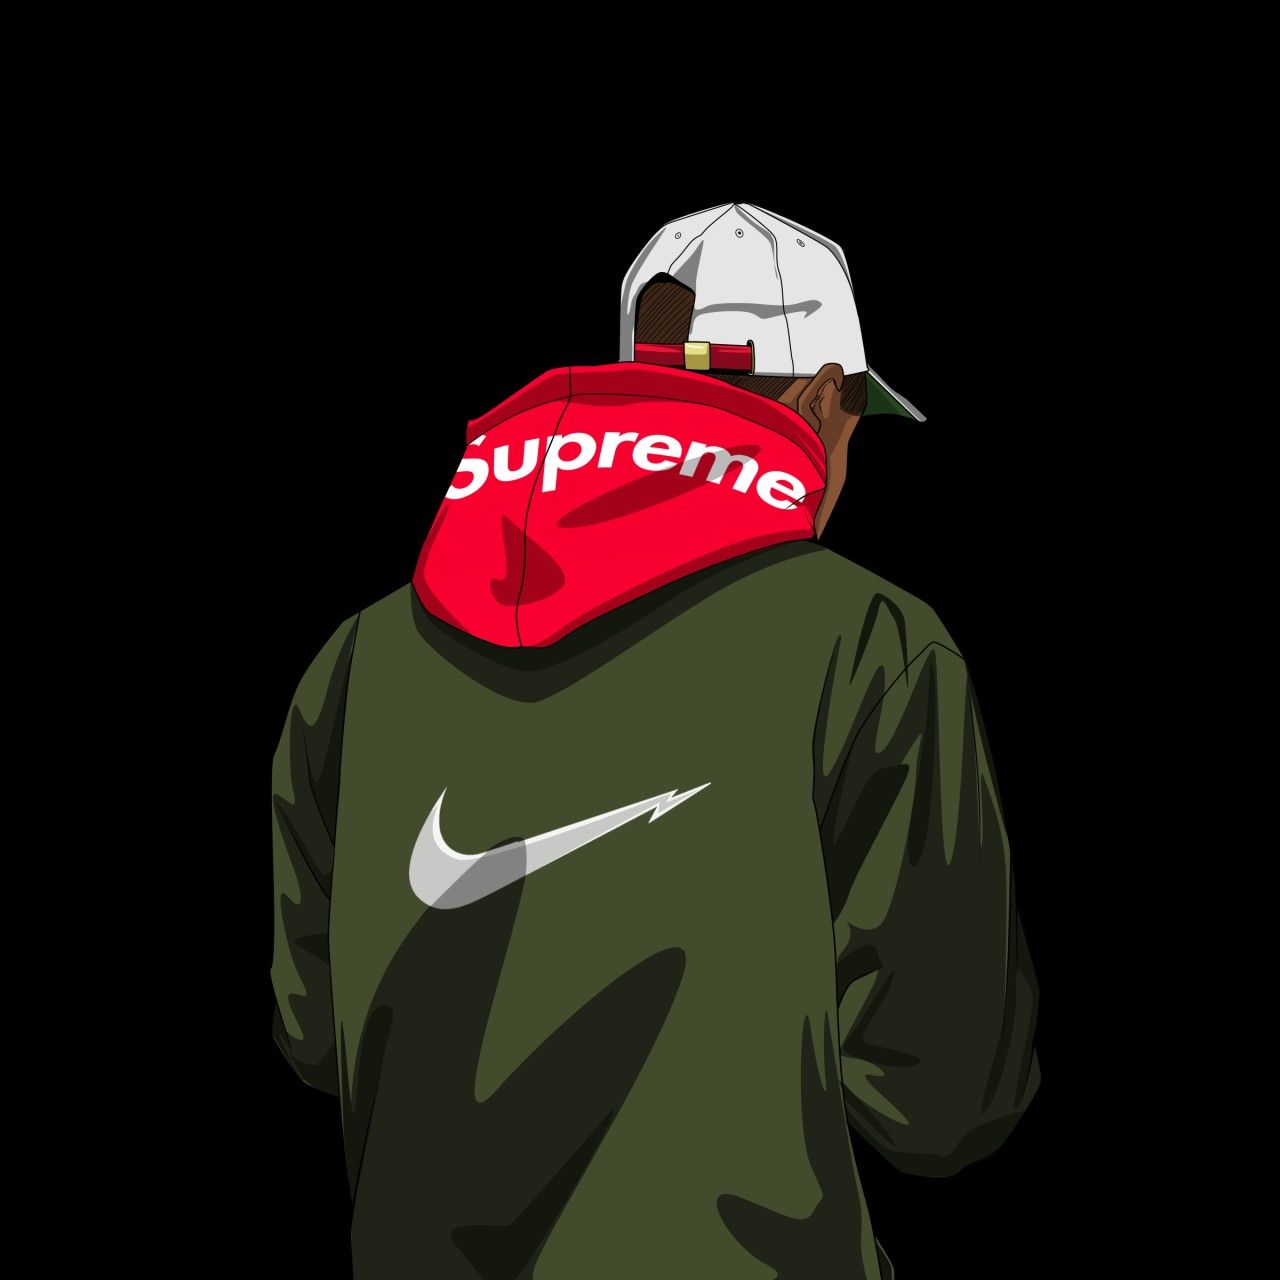 Dope Supreme Wallpapers   Top Dope Supreme Backgrounds 1280x1280